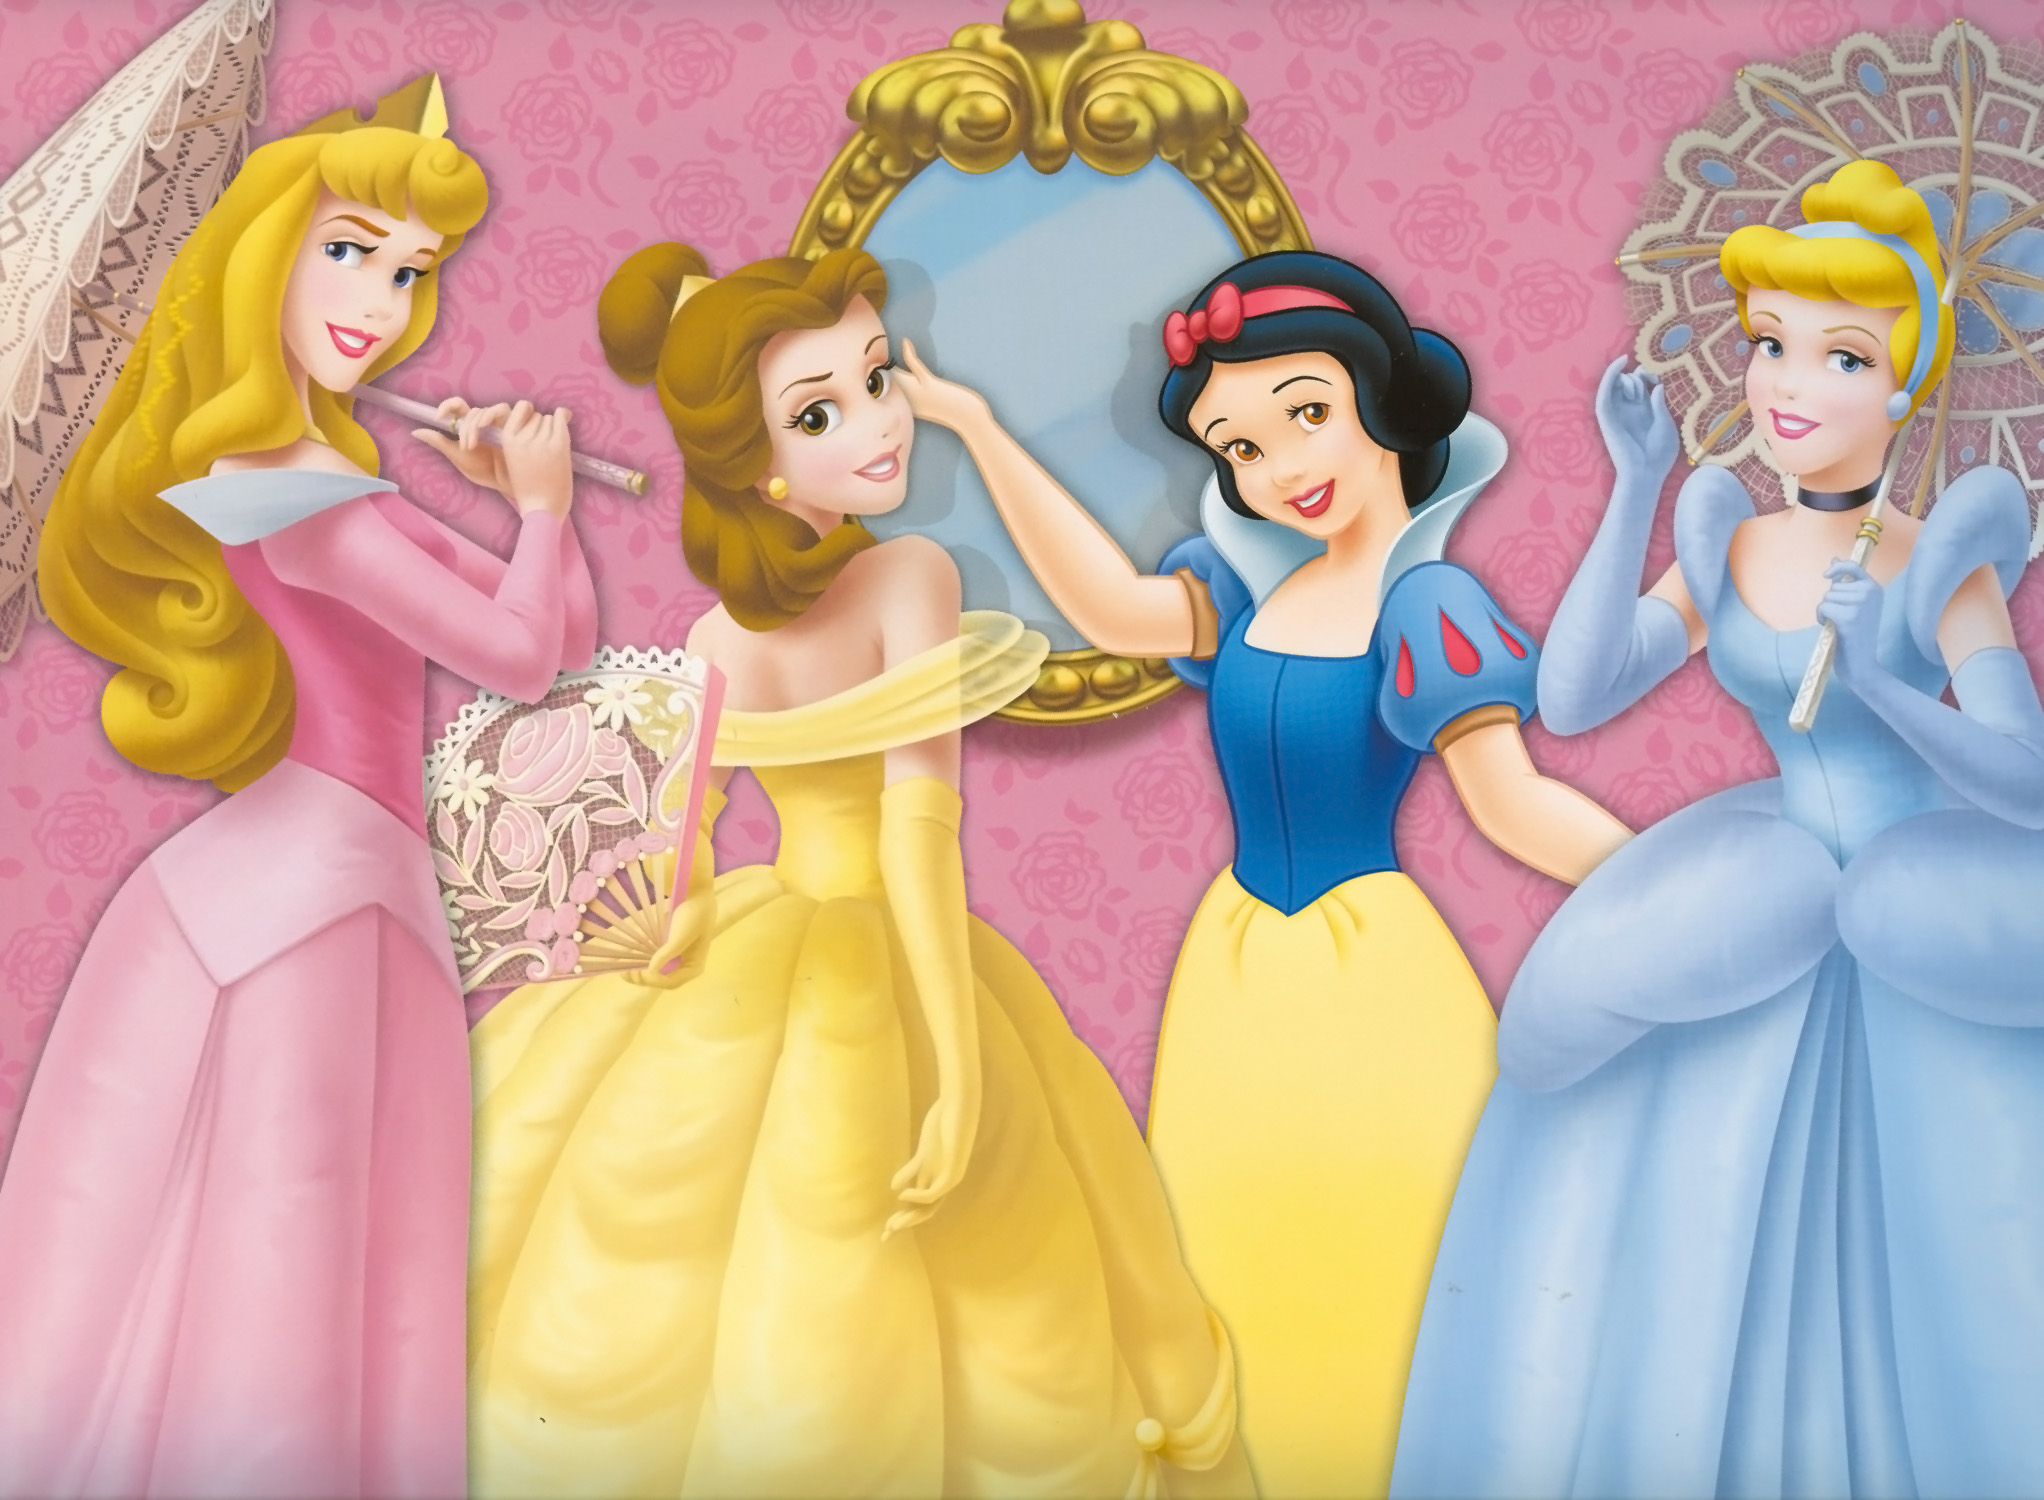 Your Disney princess group want you